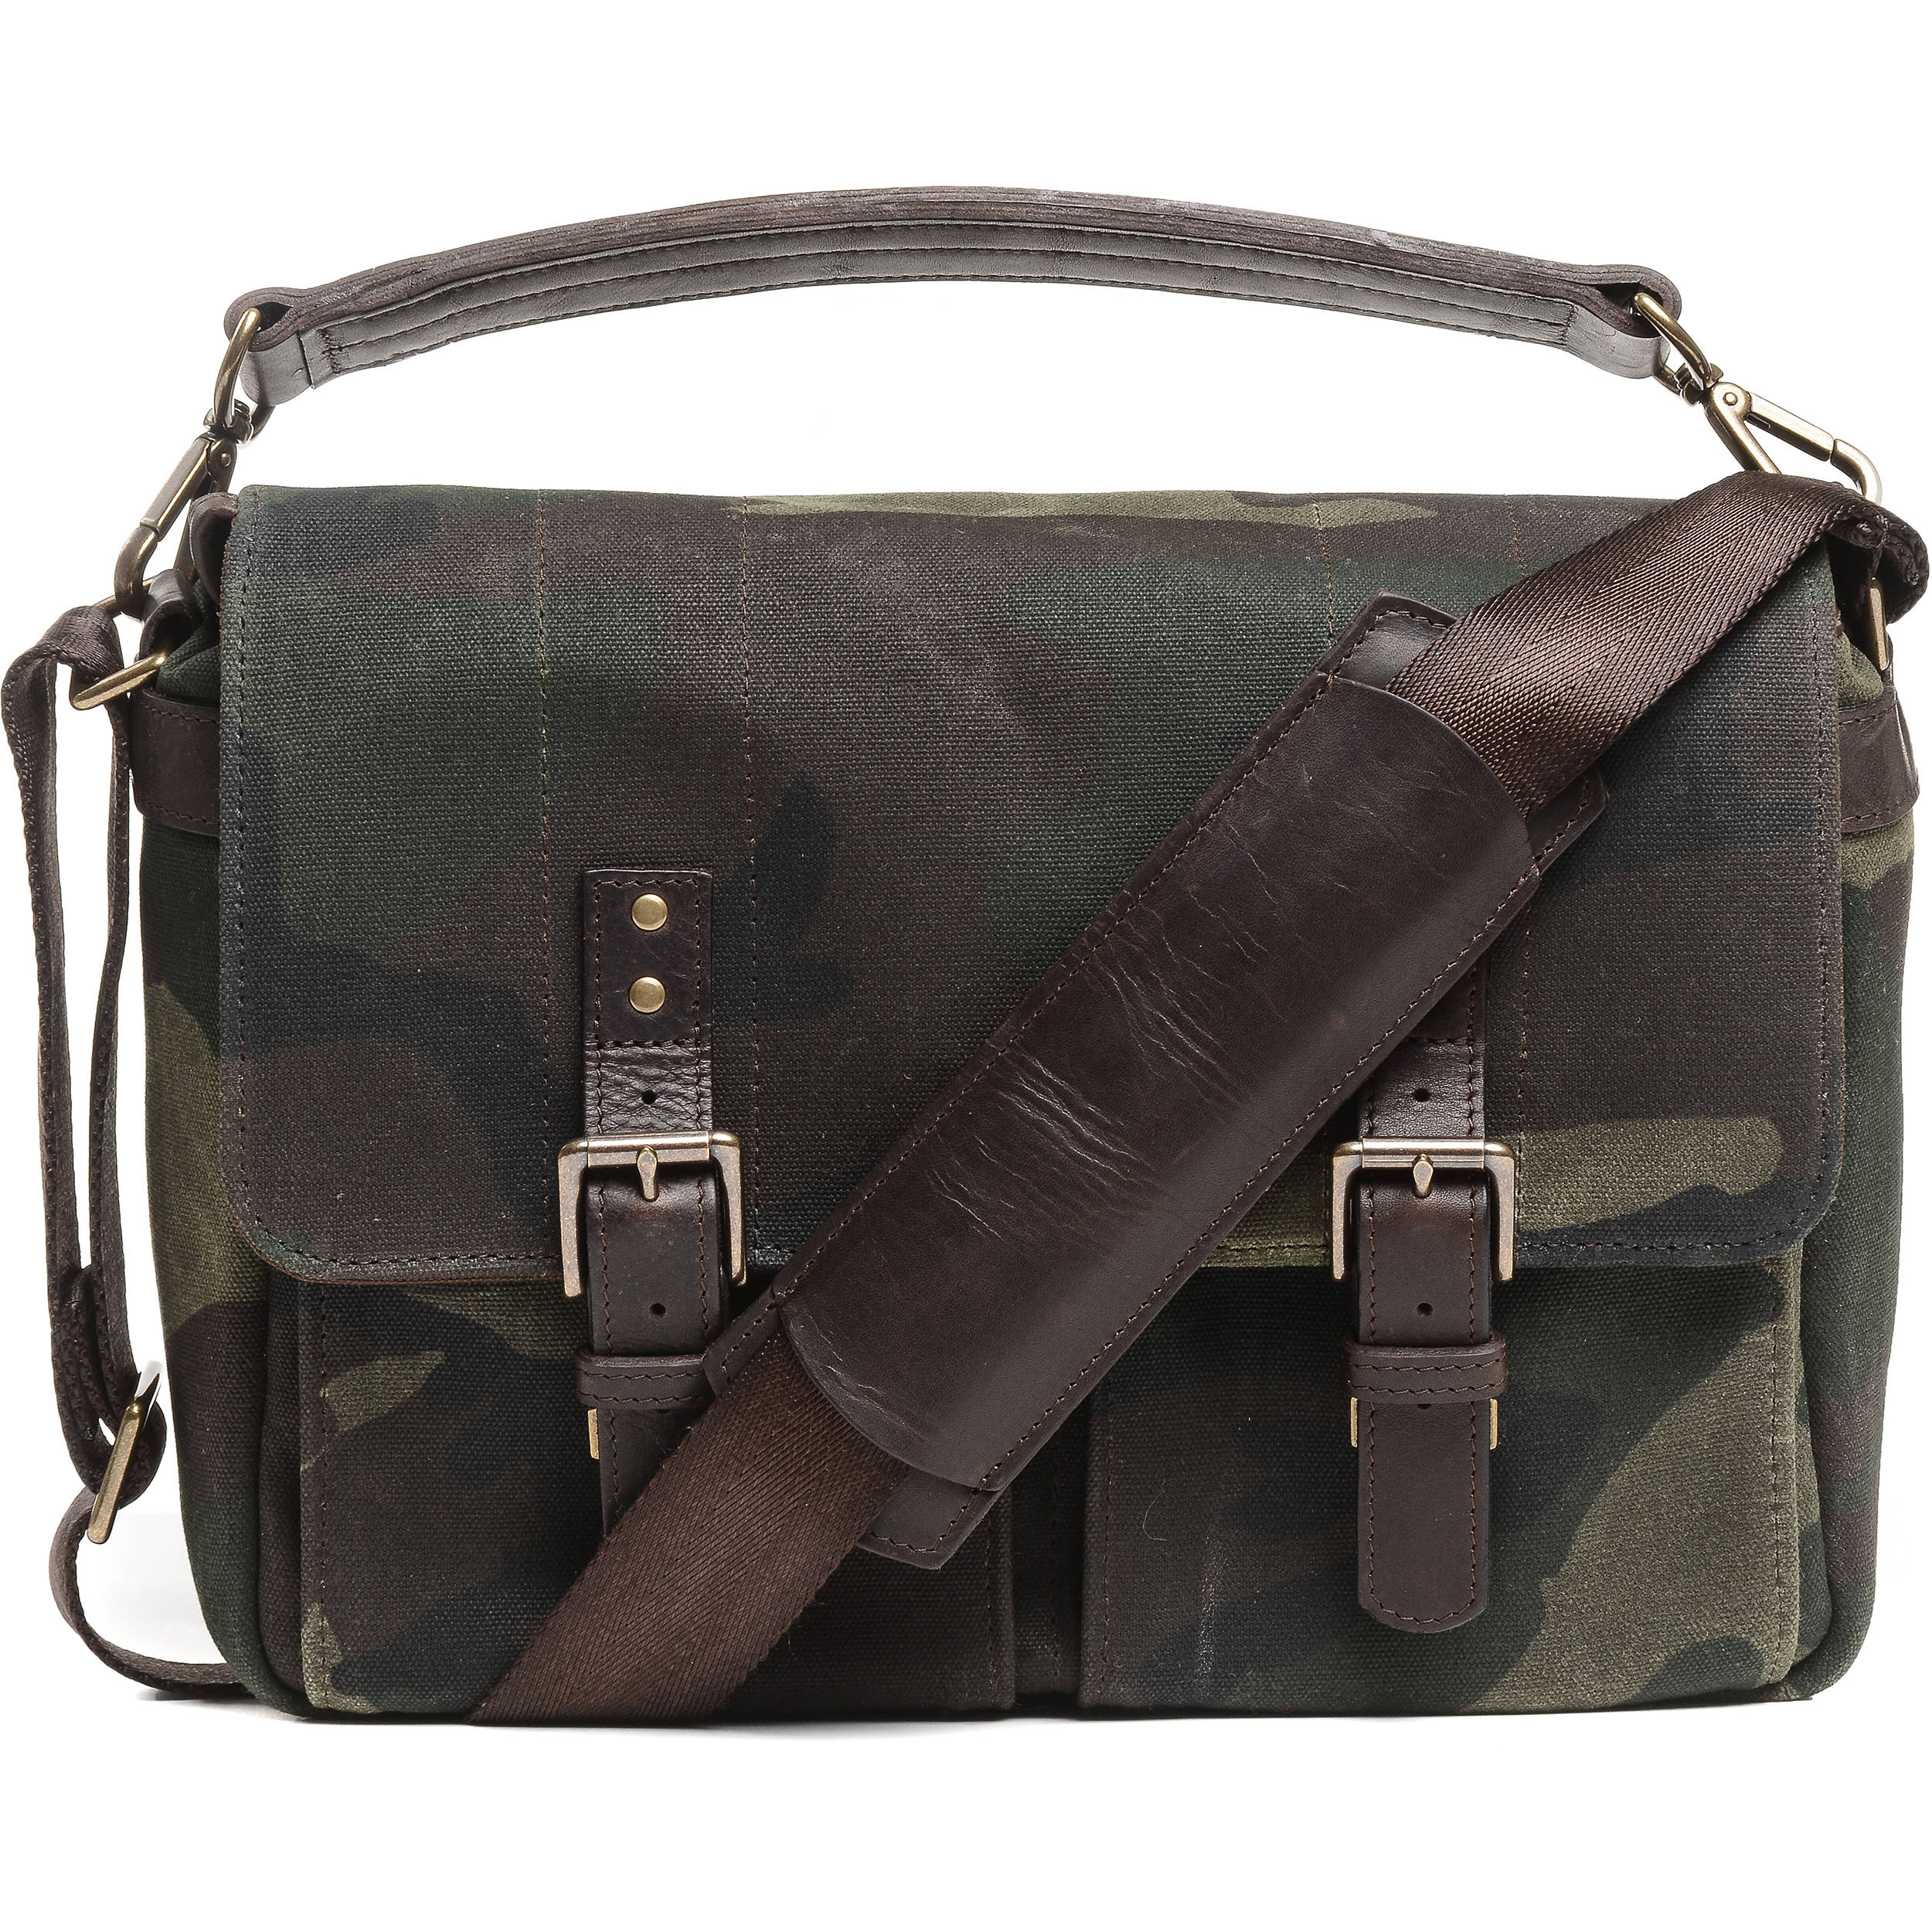 Ona Prince Street Camera Messenger Bag Camouflage Waxed Canvas